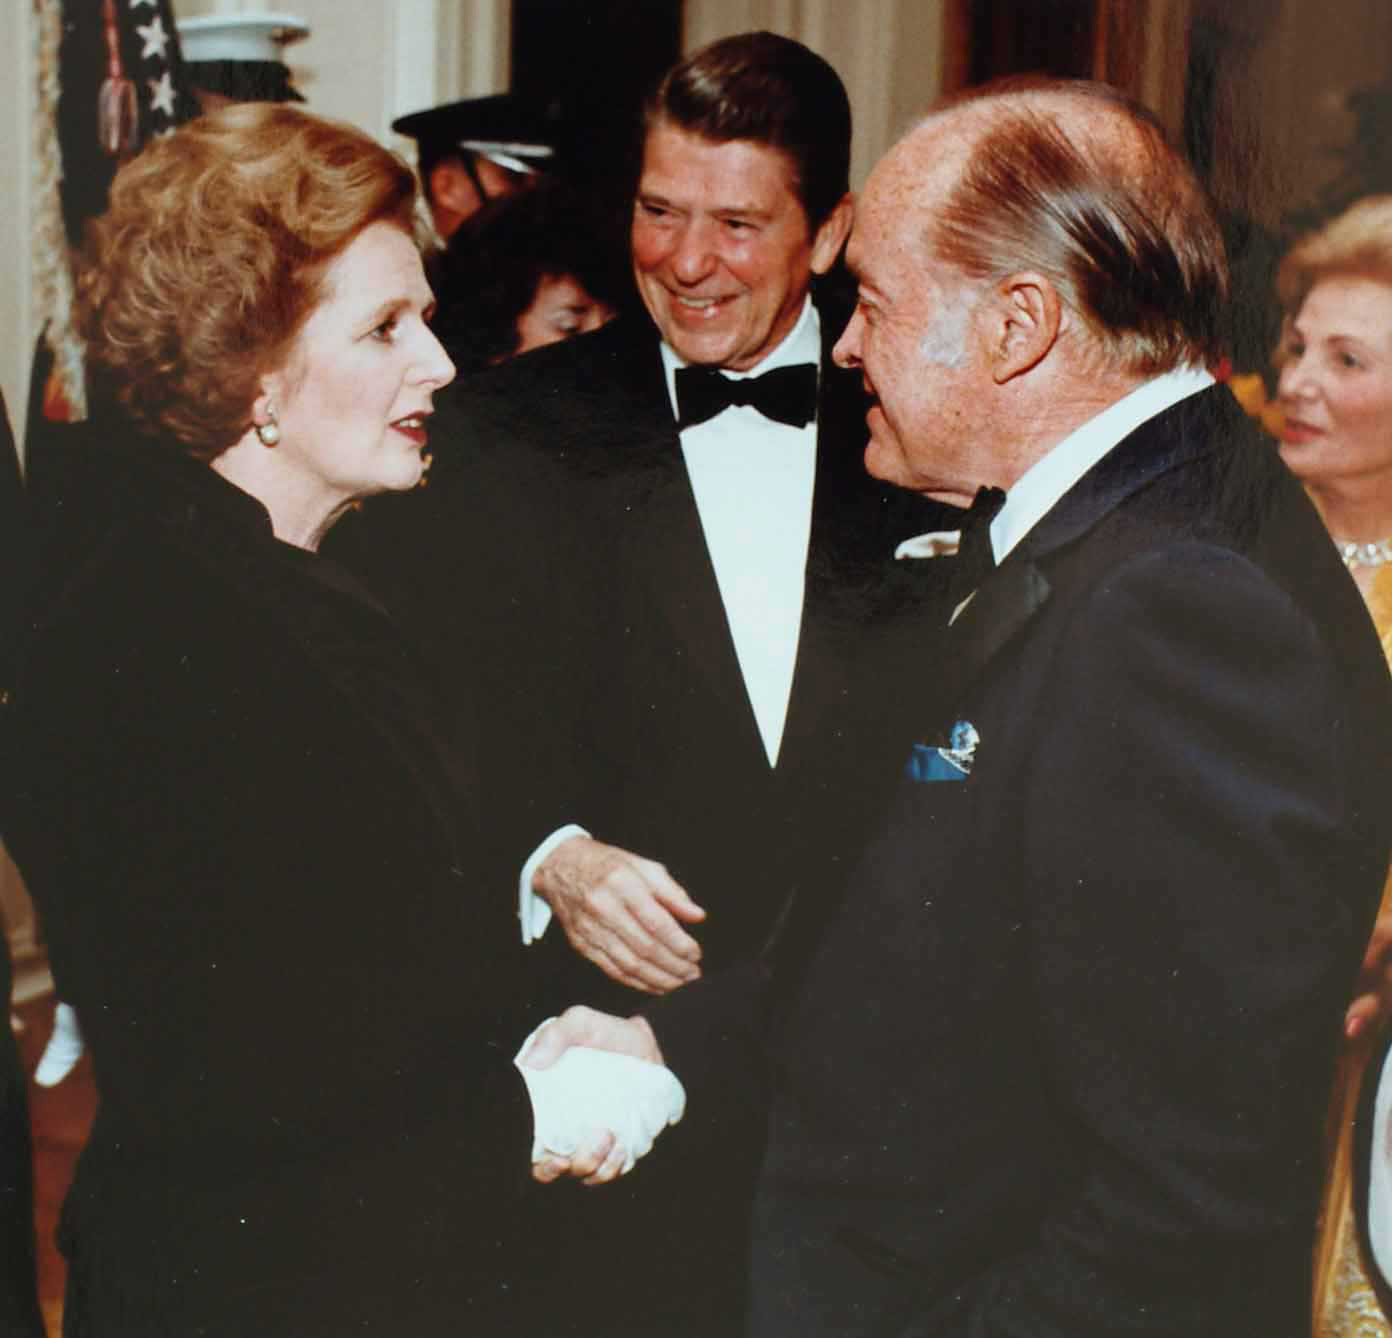 http://upload.wikimedia.org/wikipedia/commons/d/d8/Thatcher_with_Reagan_and_Bob_Hope.jpg